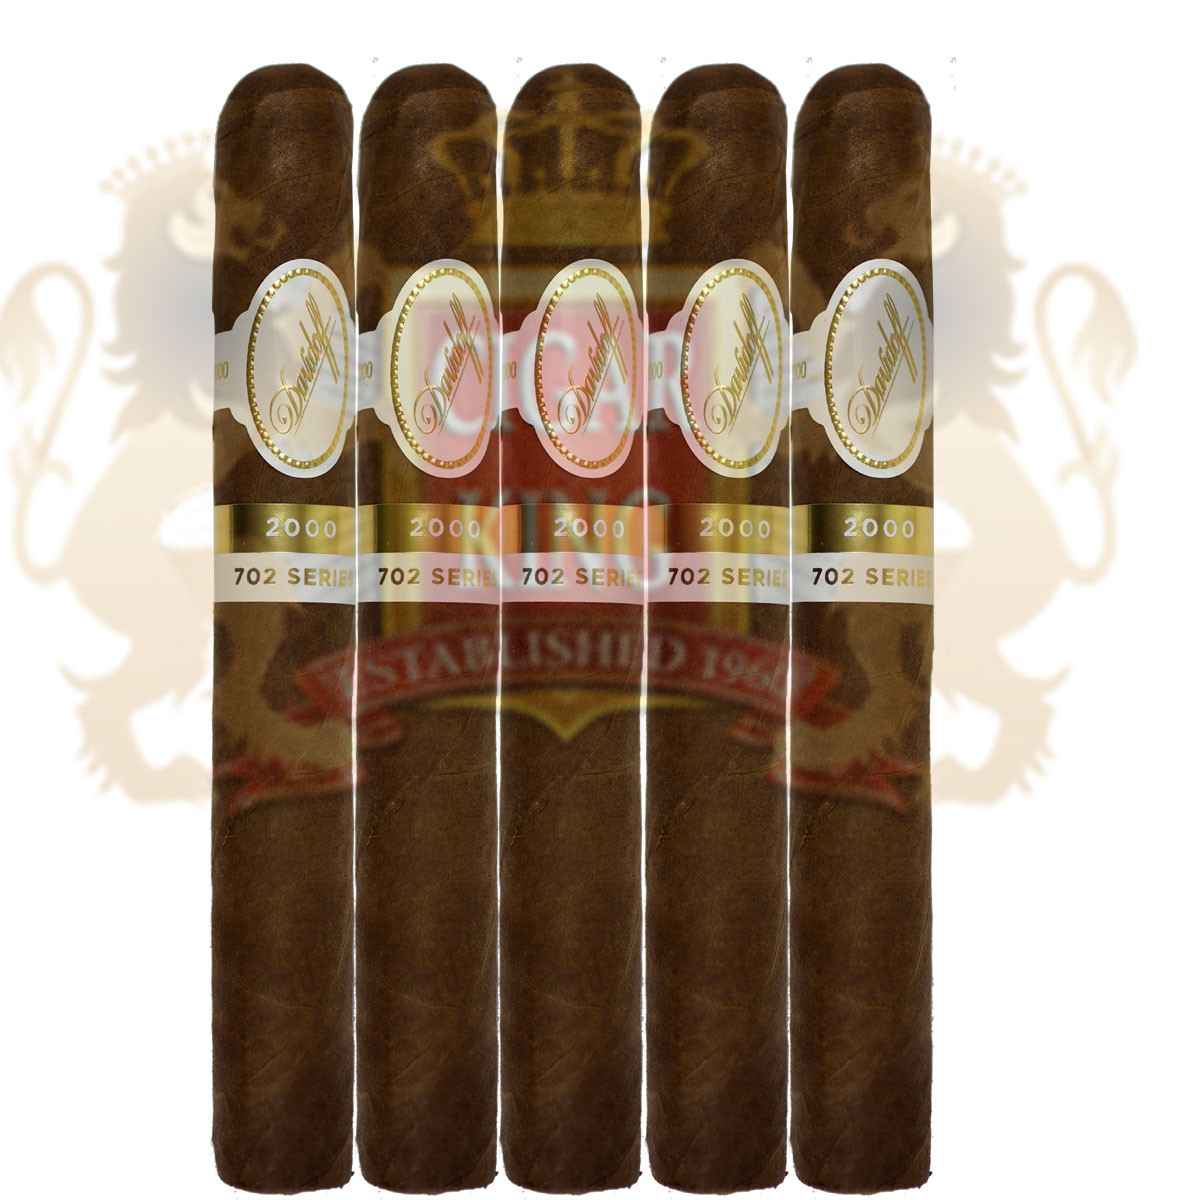 Davidoff 702 Series Signature 2000 (5 1/16x43 / 5 Pack Sleeve)